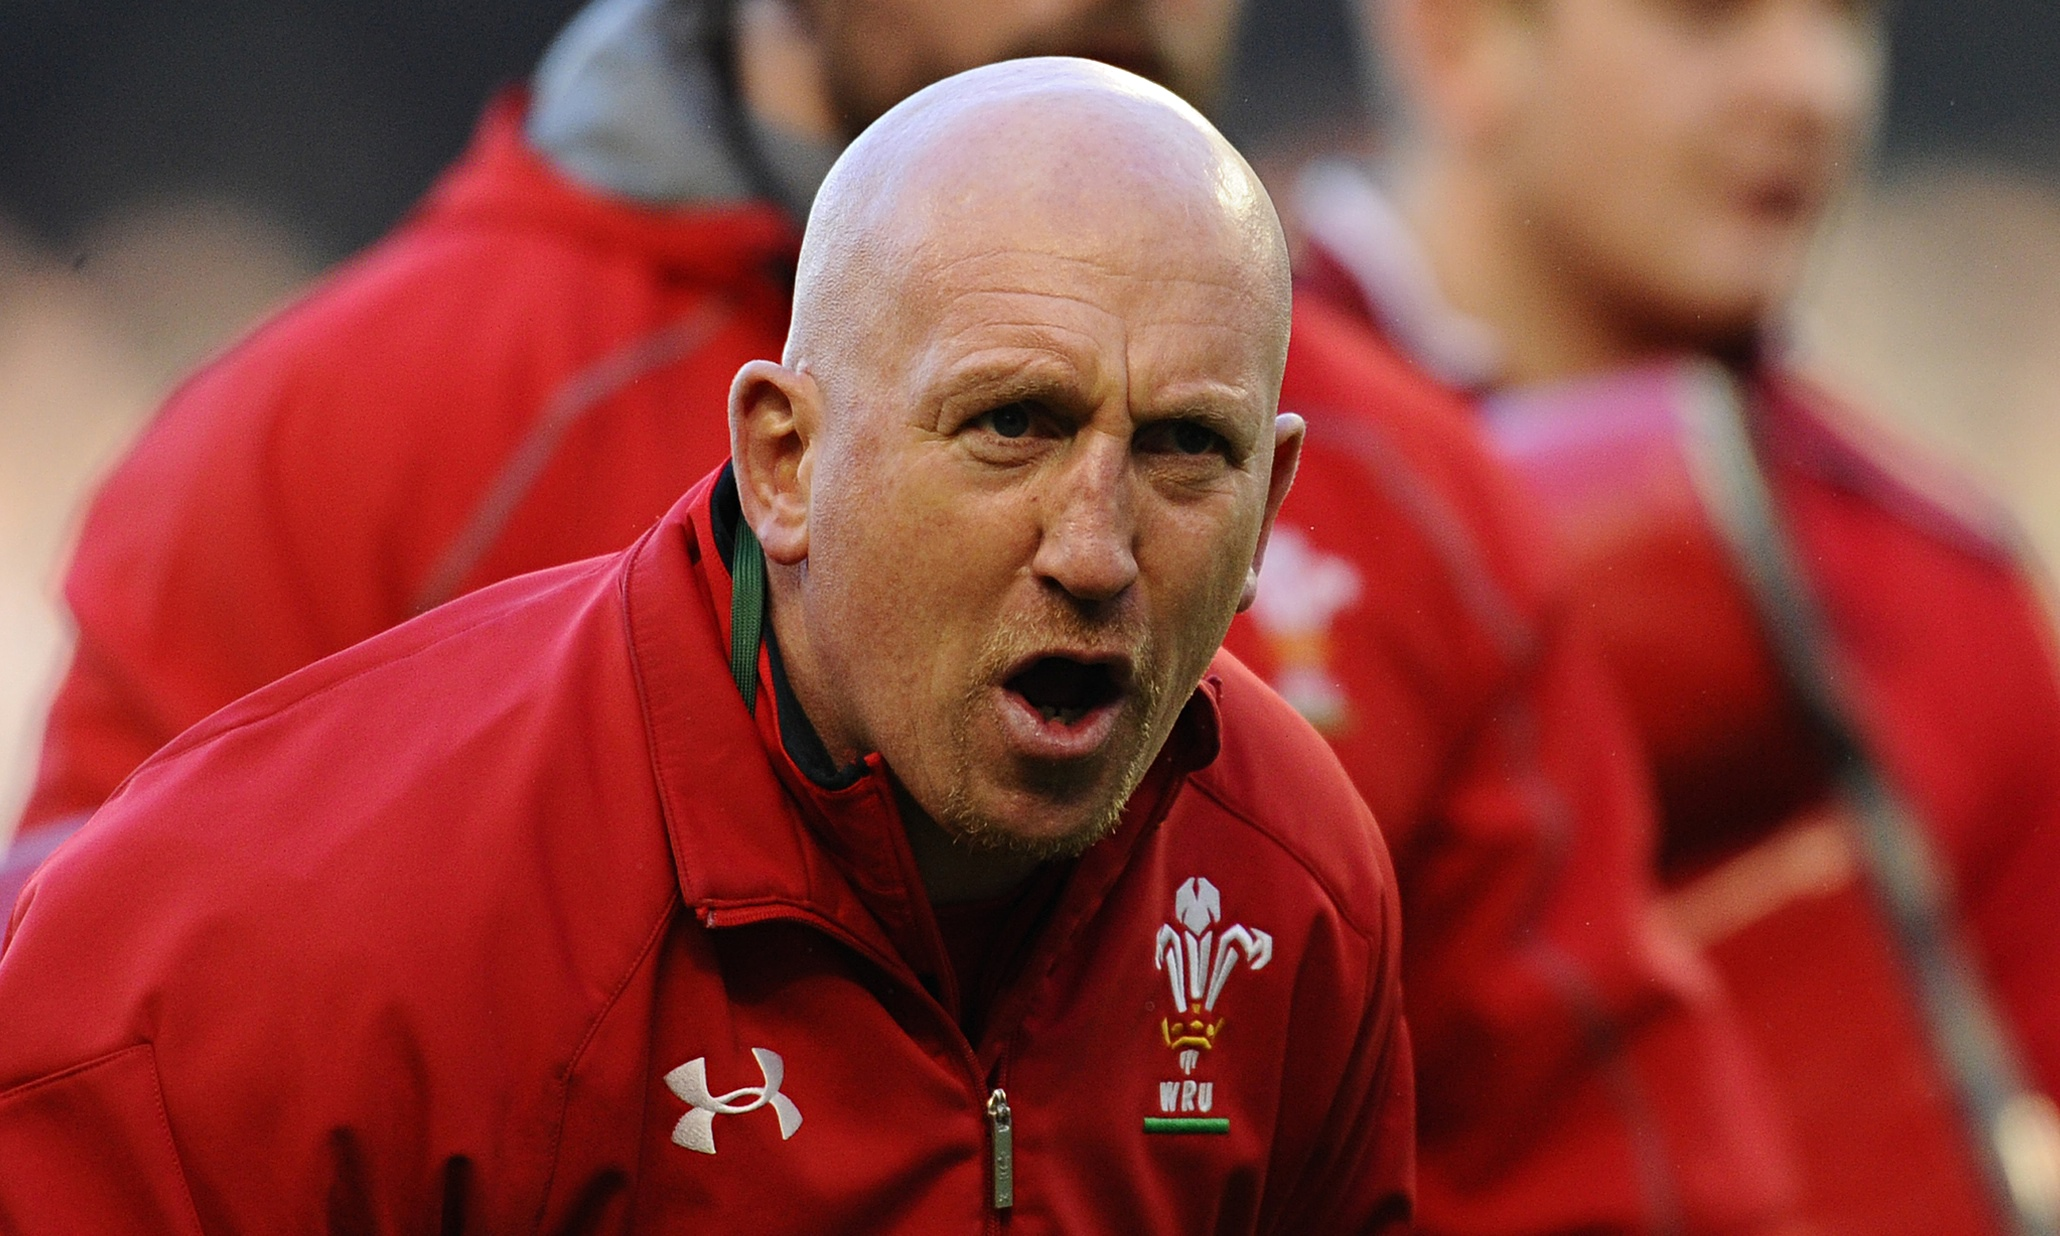 Shaun Edwards will be bring all his passion to bear for Wales against England in Cardiff on Friday.